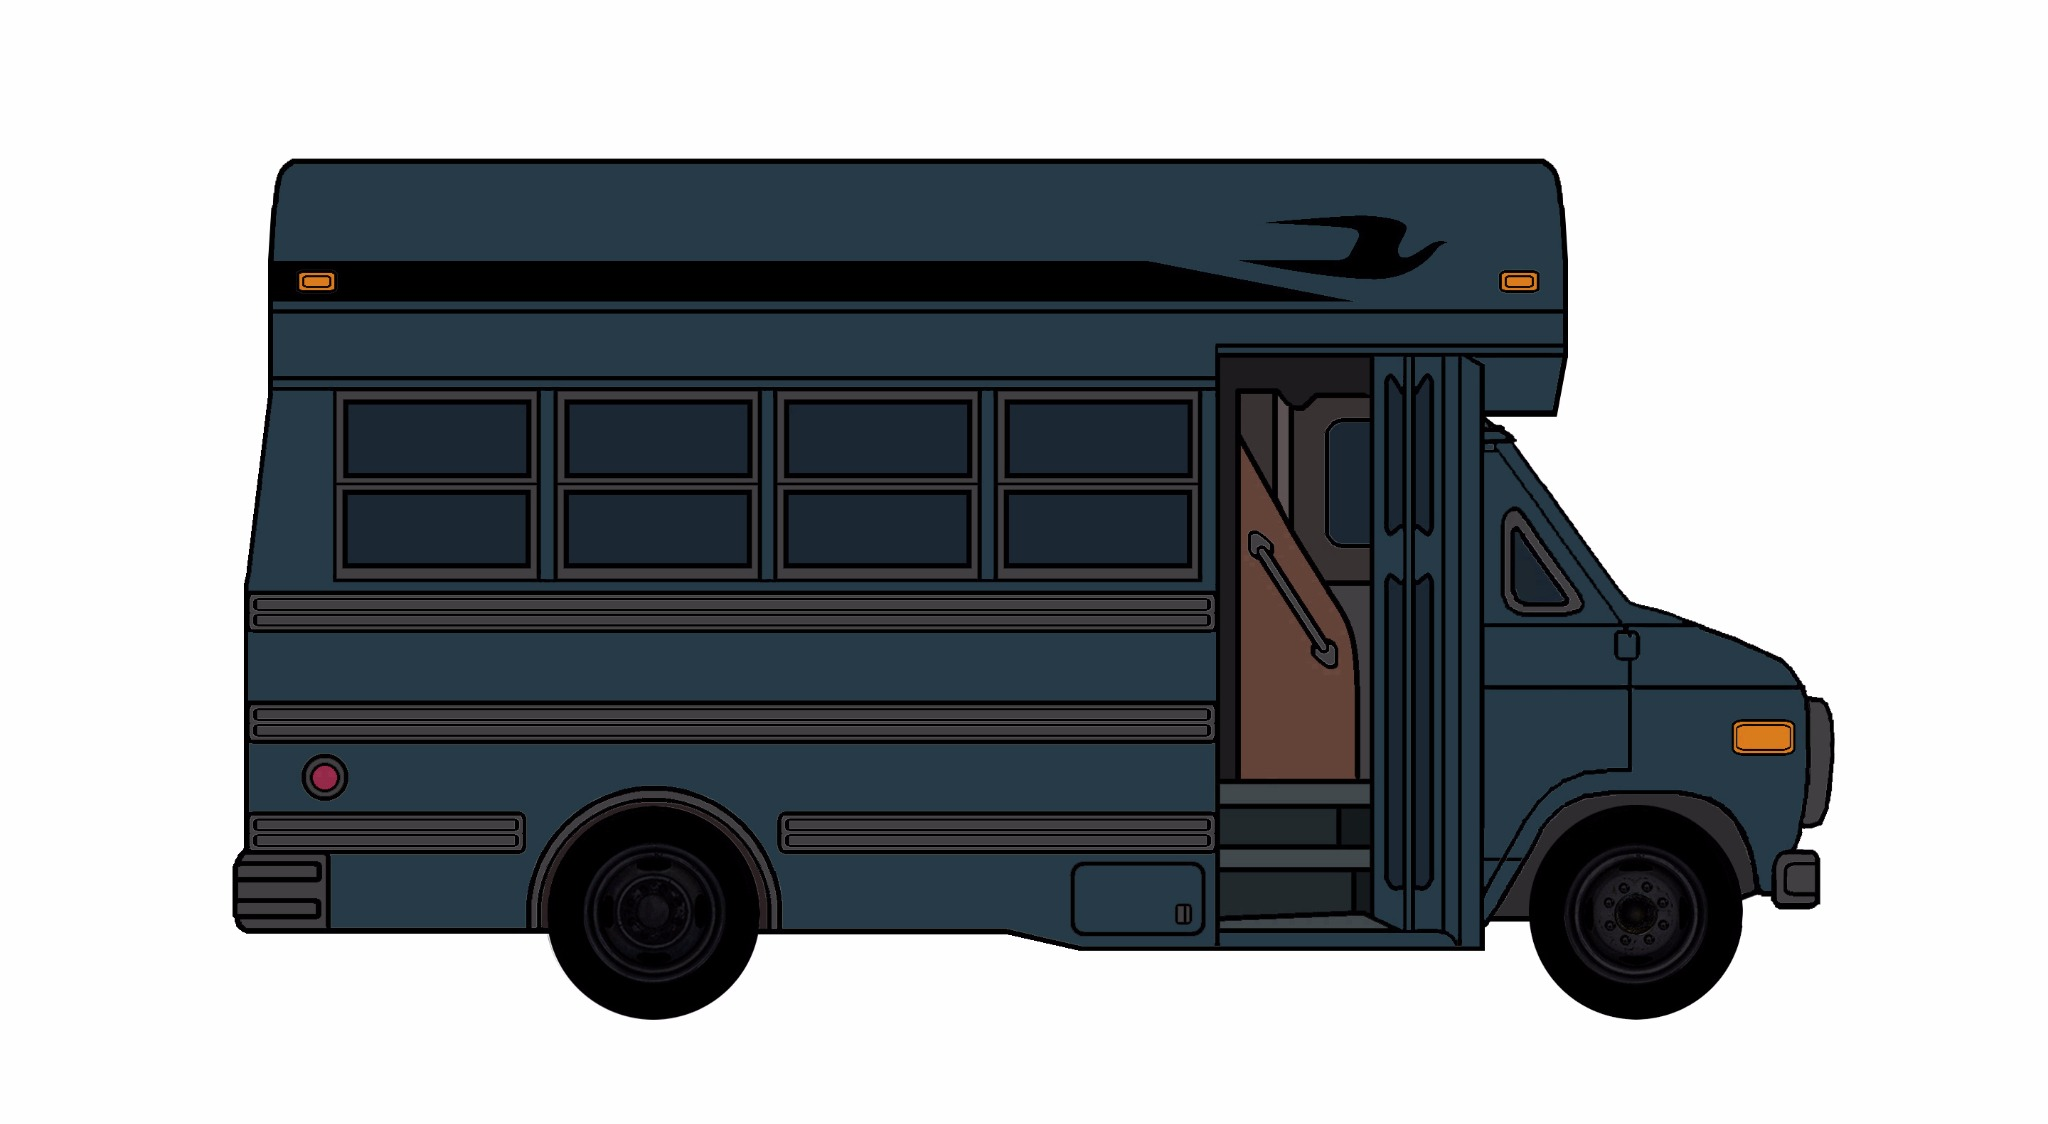 1985-96 Chevy G30 School Bus NAVY BLUE